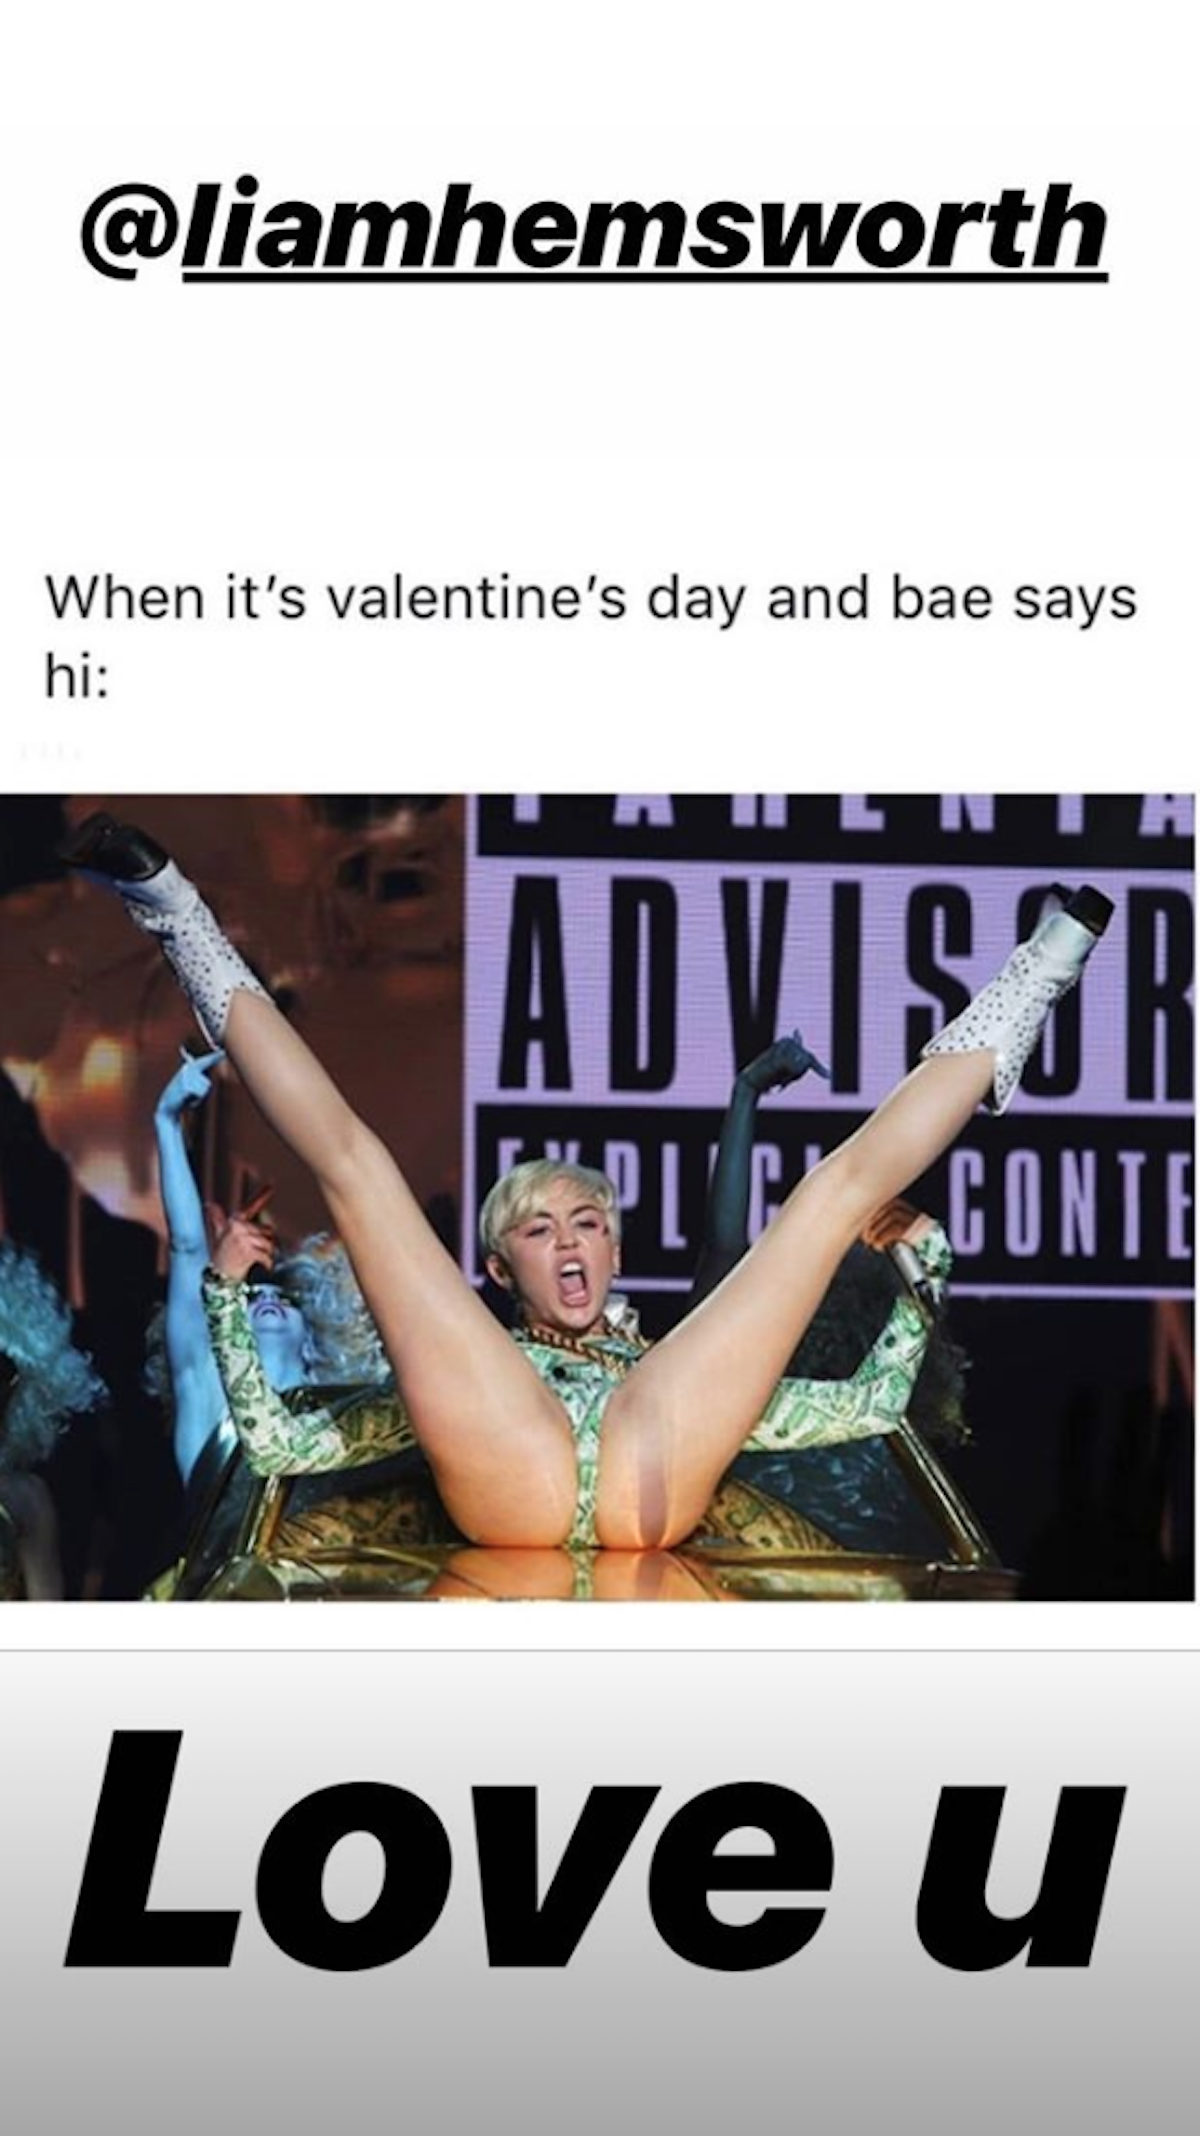 A meme that Miley Cyrus posted to Liam Hemsworth for Valentine's Day.